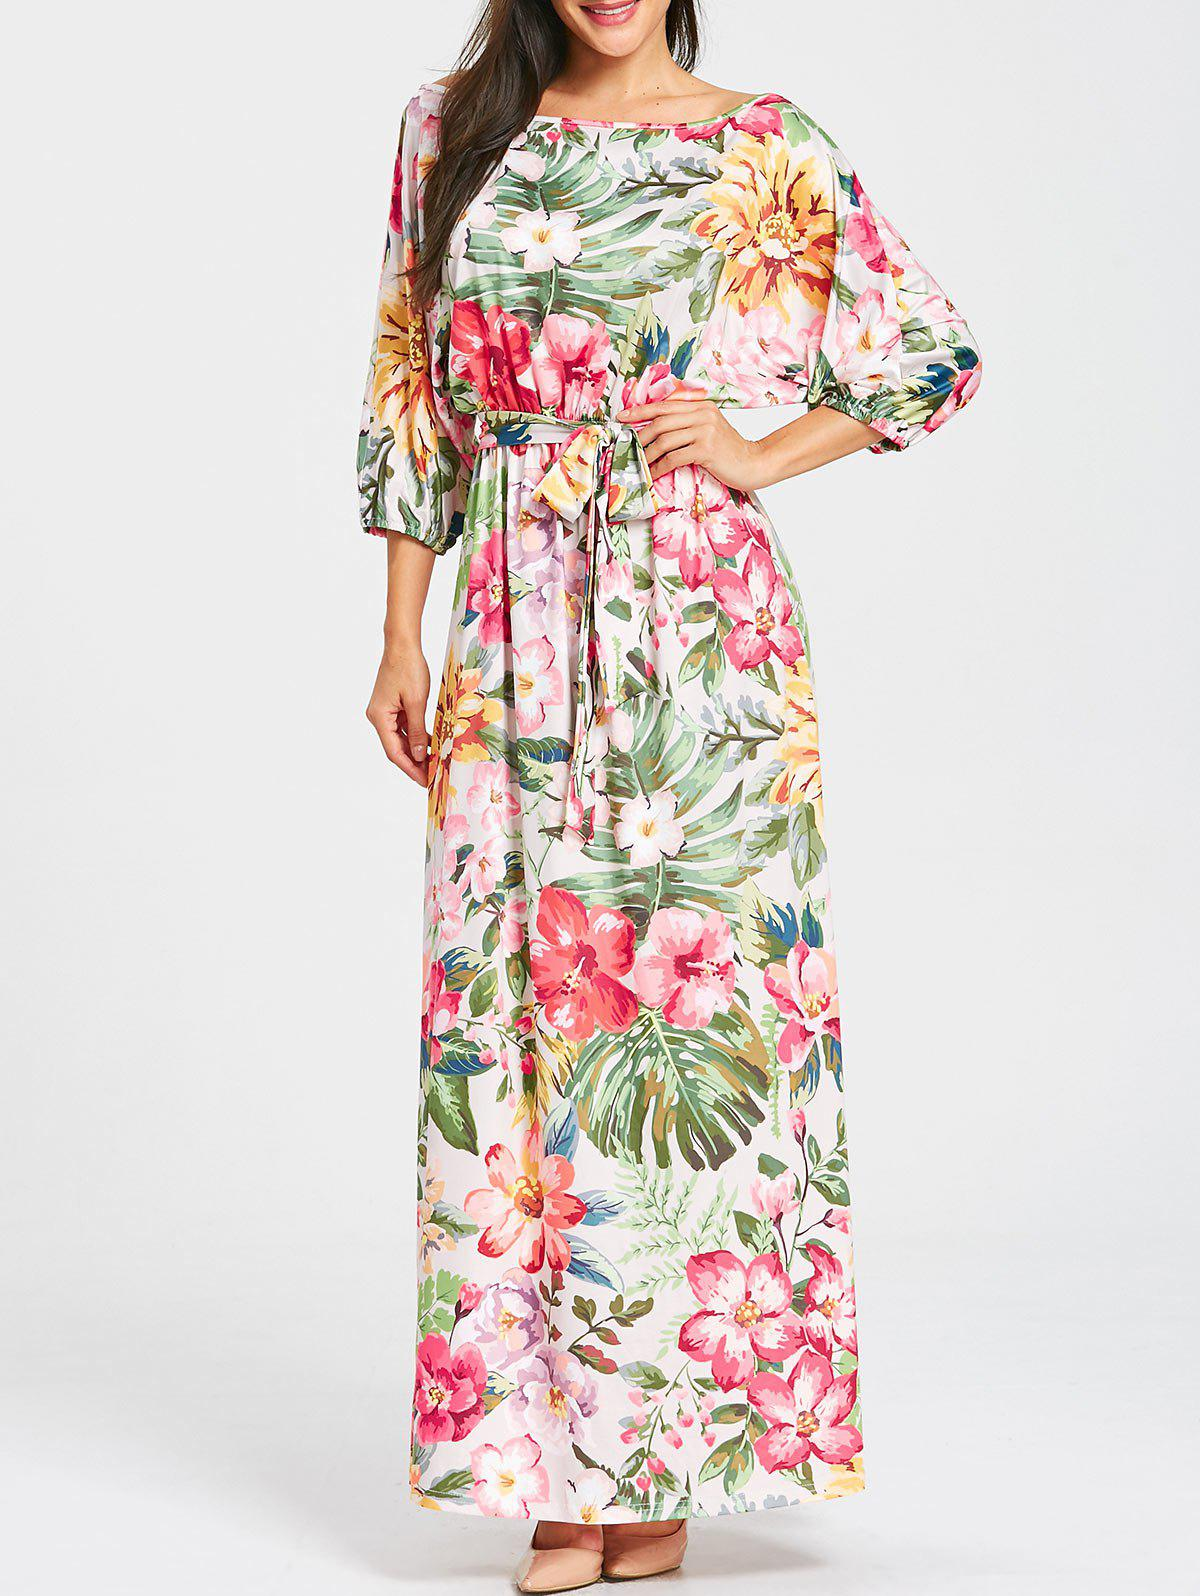 Belted Floral Print Batwing Sleeve Maxi Dress - YELLOW / GREEN XL